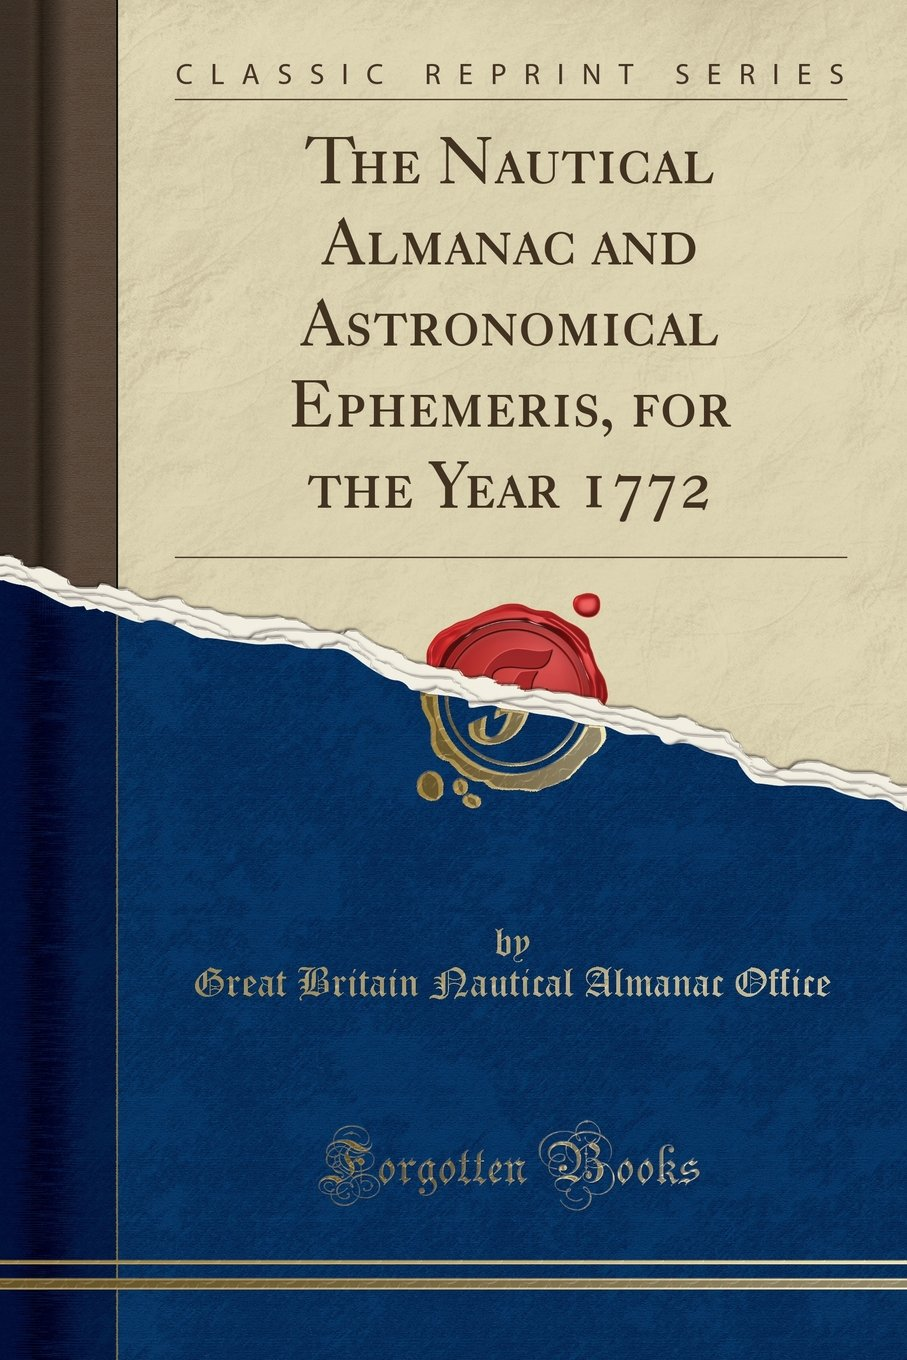 Read Online The Nautical Almanac and Astronomical Ephemeris, for the Year 1772 (Classic Reprint) ebook